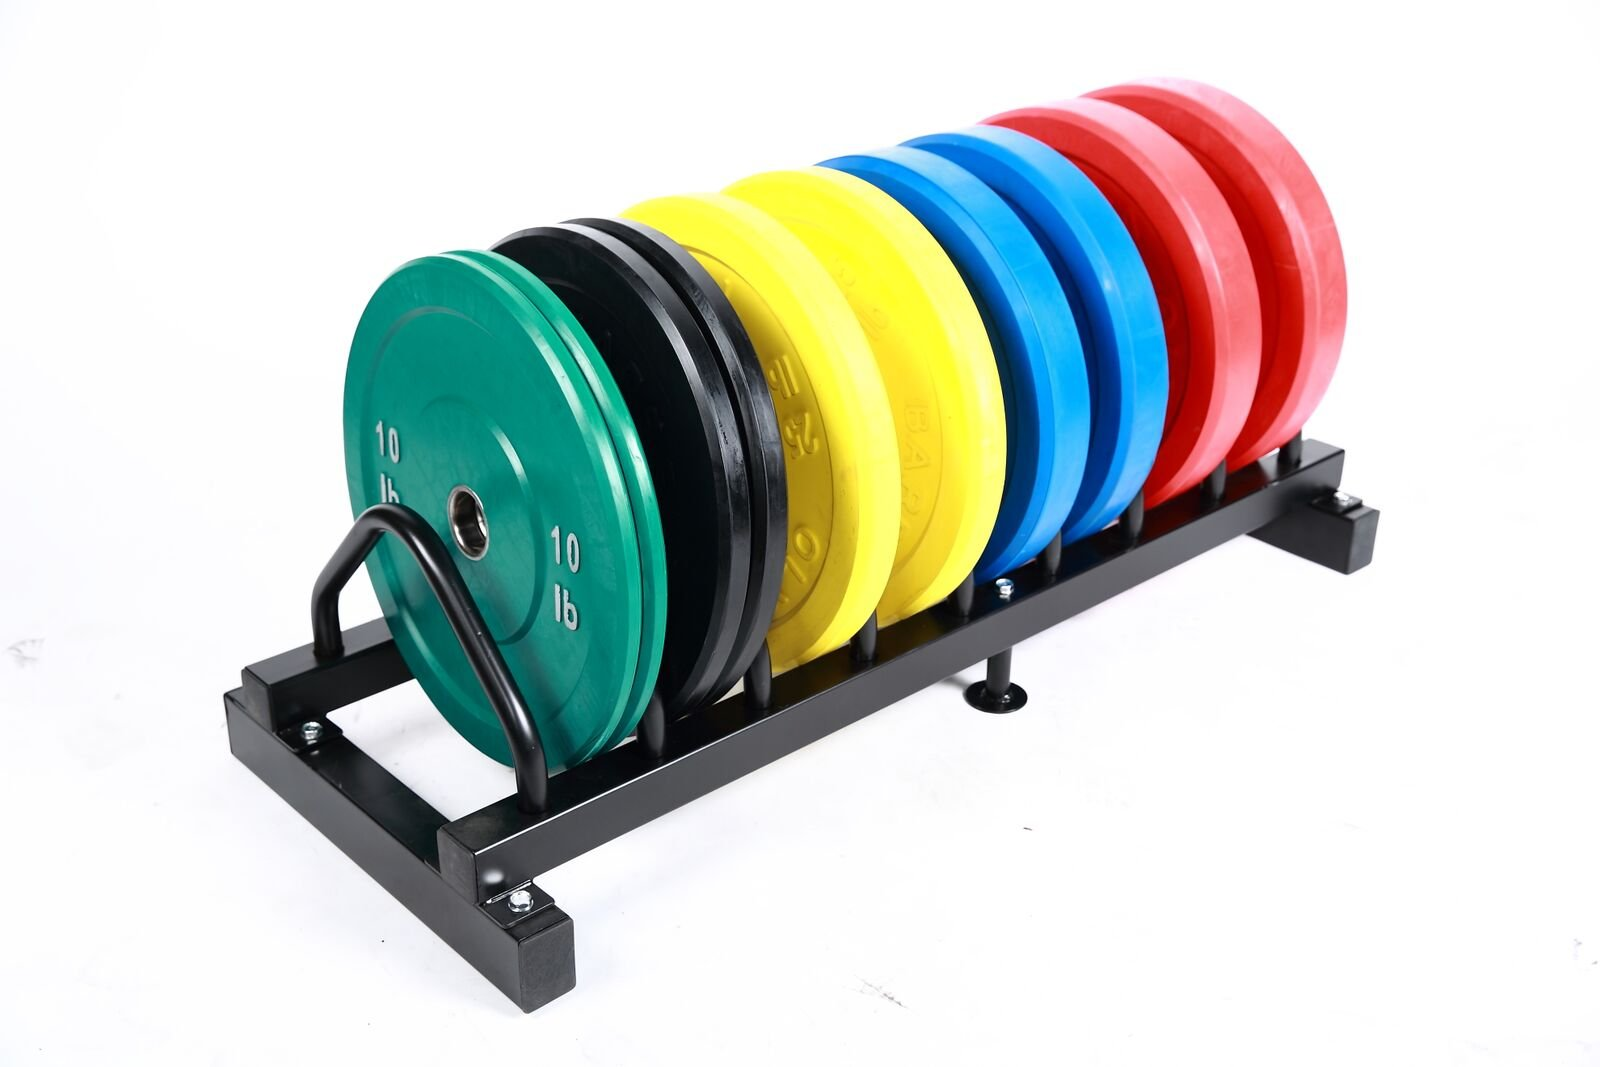 Olympic Bumper Plate Rack (Weights Not Included) by Ader Sporting Goods